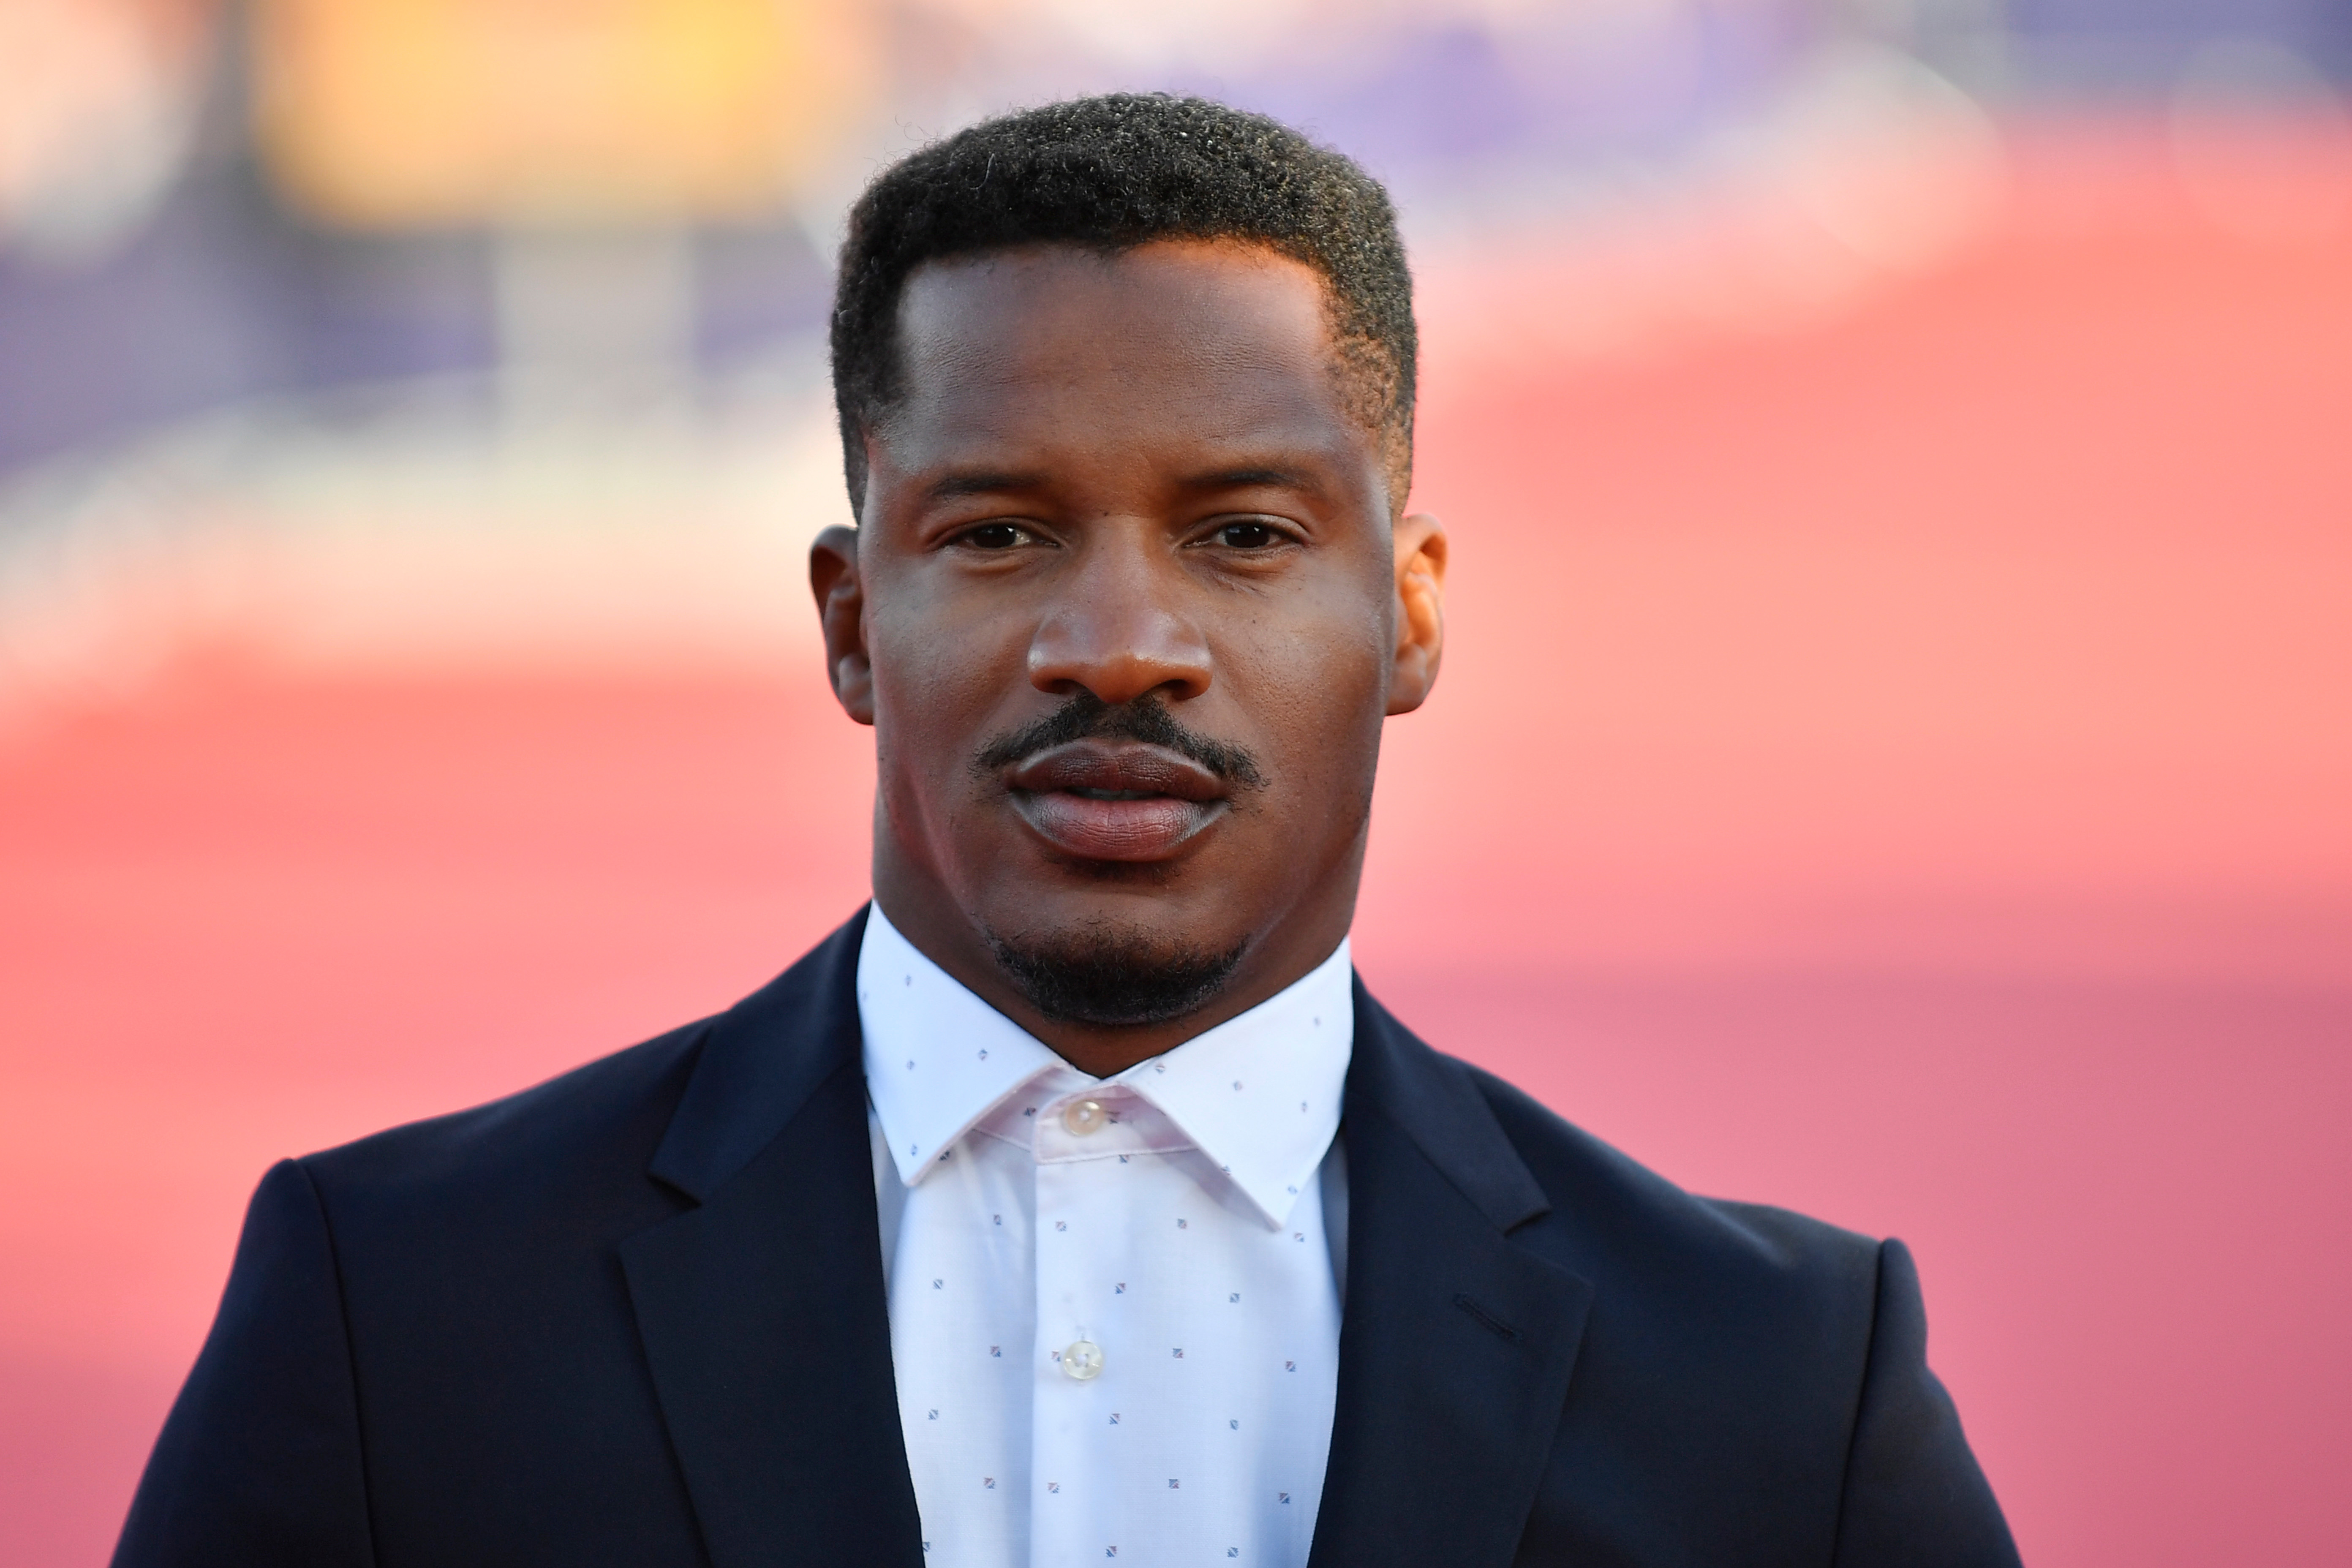 Nate Parker Fires Back at Critics After 'American Skin' Panned in Venice Reviews